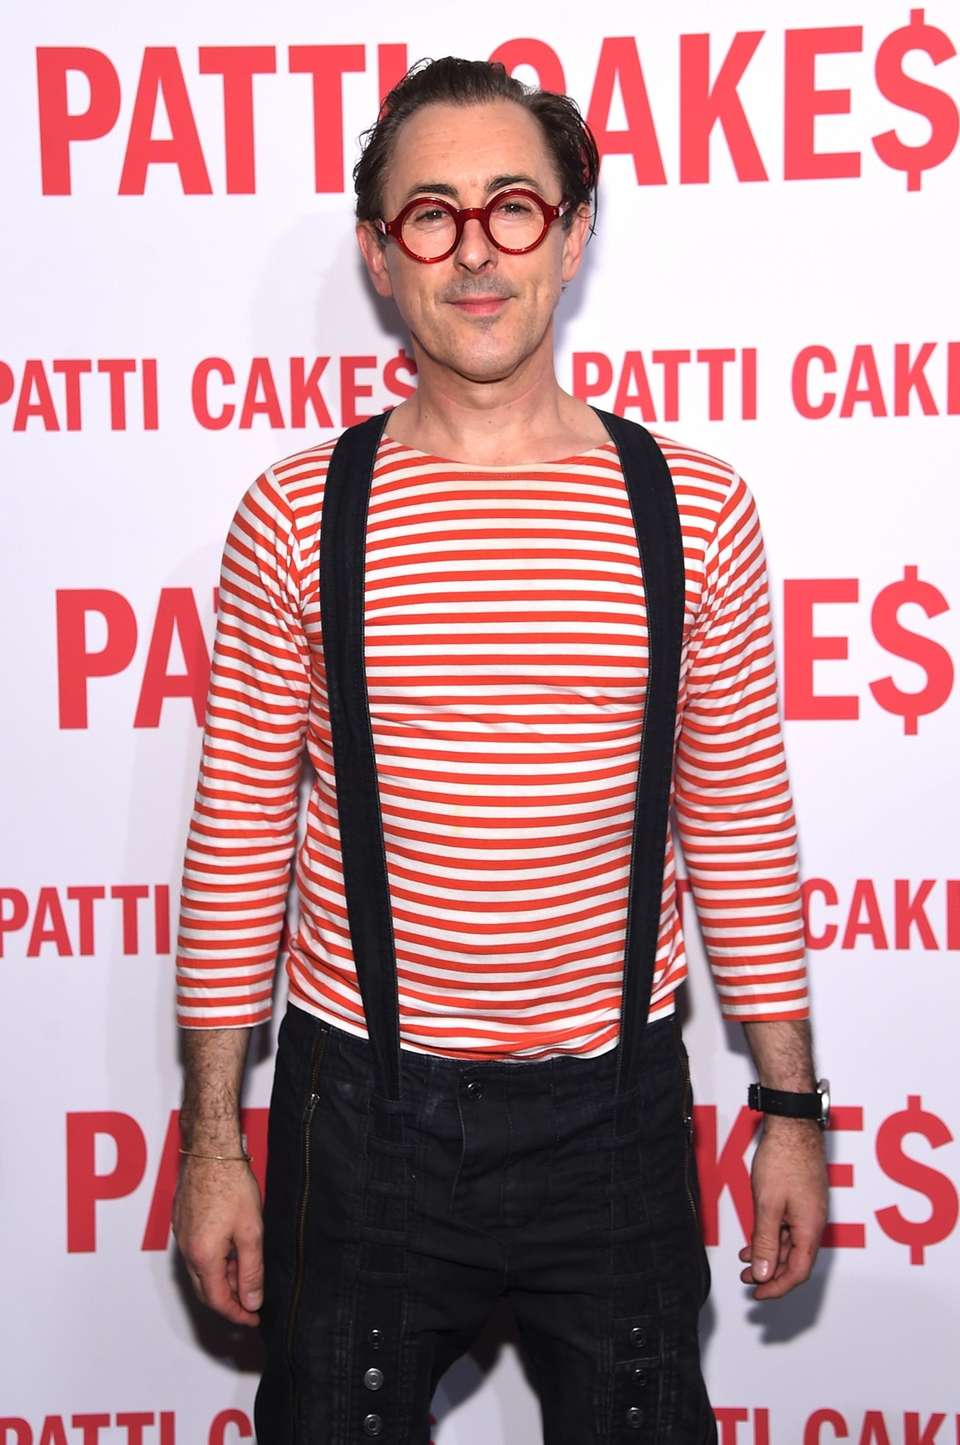 Alan Cumming attends the New York premiere of